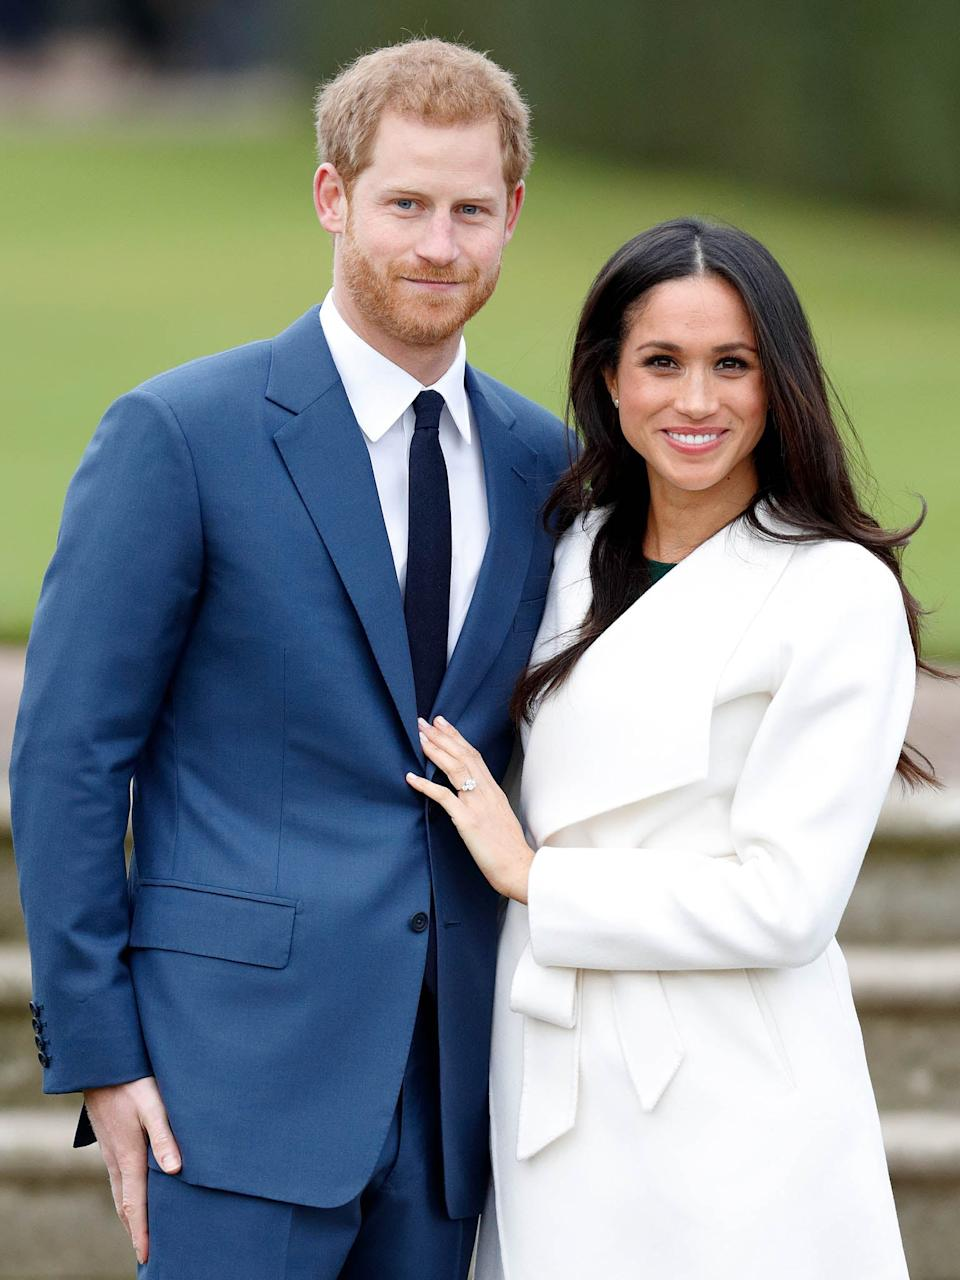 Prince Harry and Meghan Markle announced their engagement on 27 November Getty Images